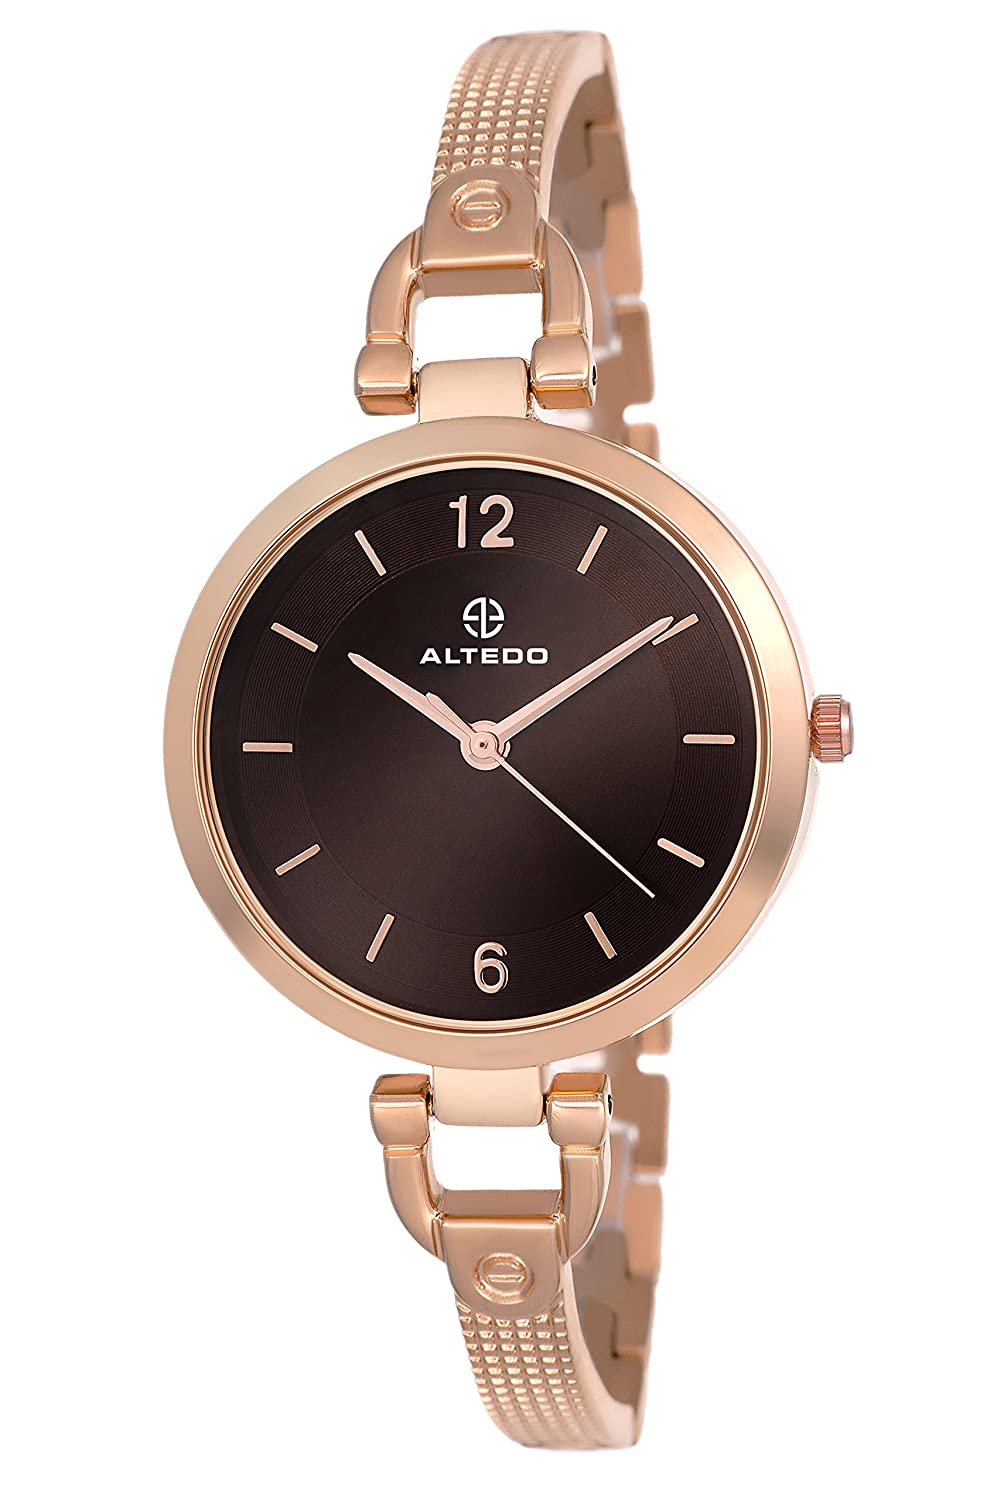 ALTEDO Quartz Movement Analogue Brown Dial Women's Watch